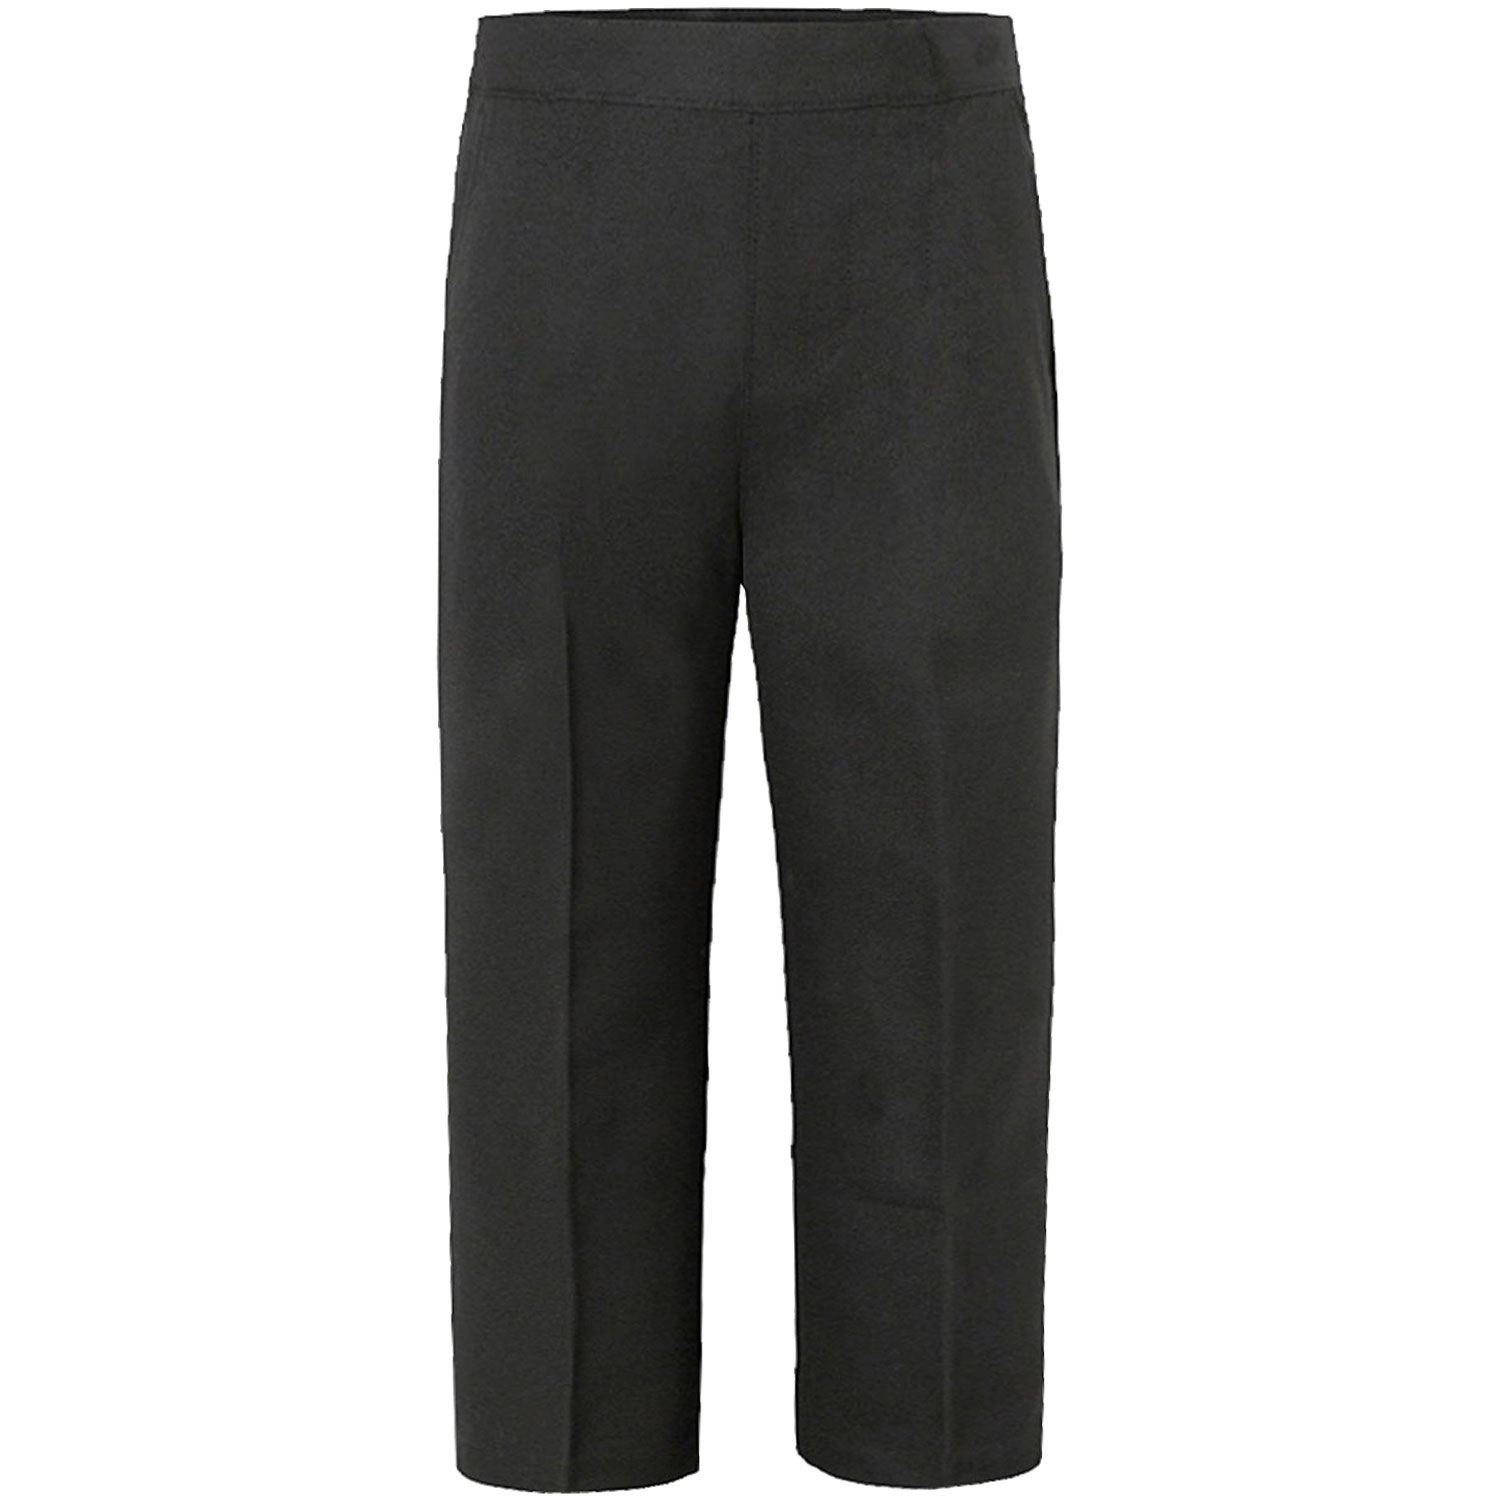 Great value boys school trousers online at George at ASDA. Our school range is fantastic quality, style and value, with a free day guarantee!